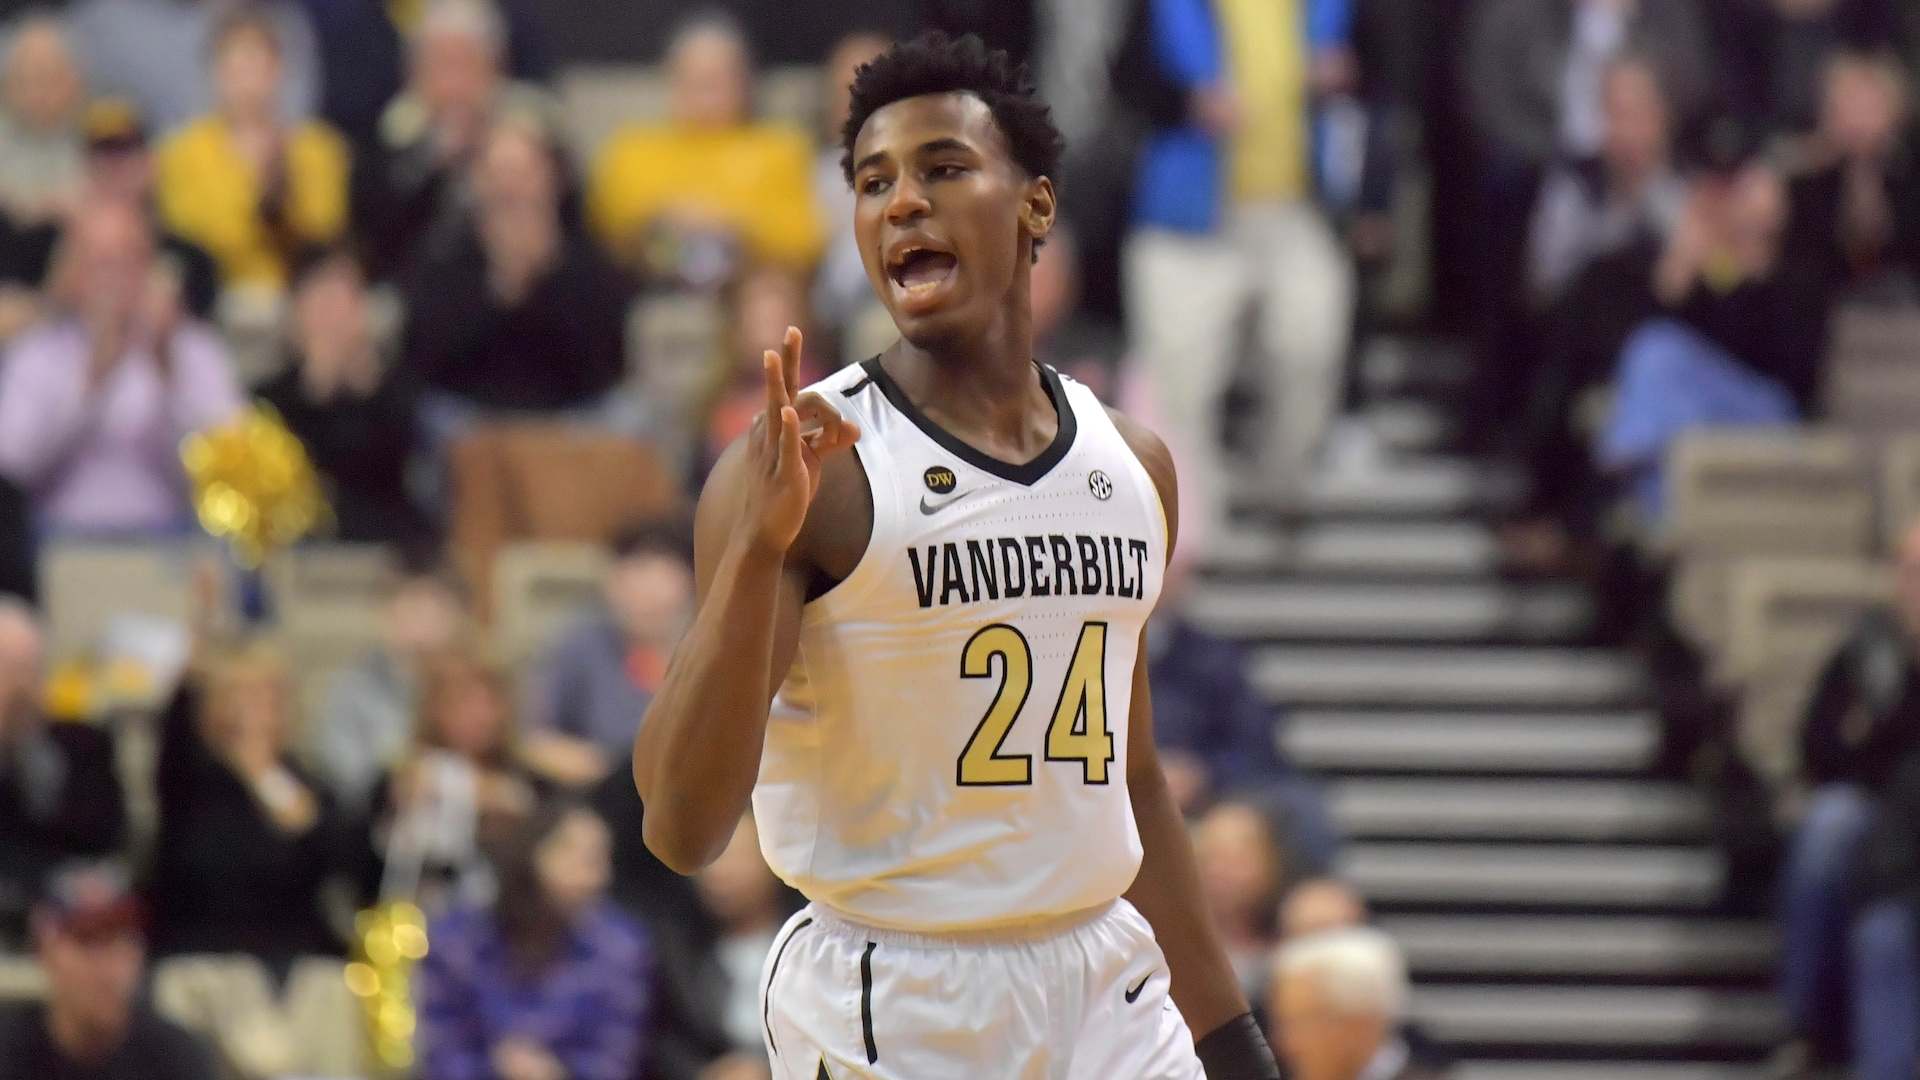 Vanderbilt guard Aaron Nesmith ready to take long-range touch to NBA